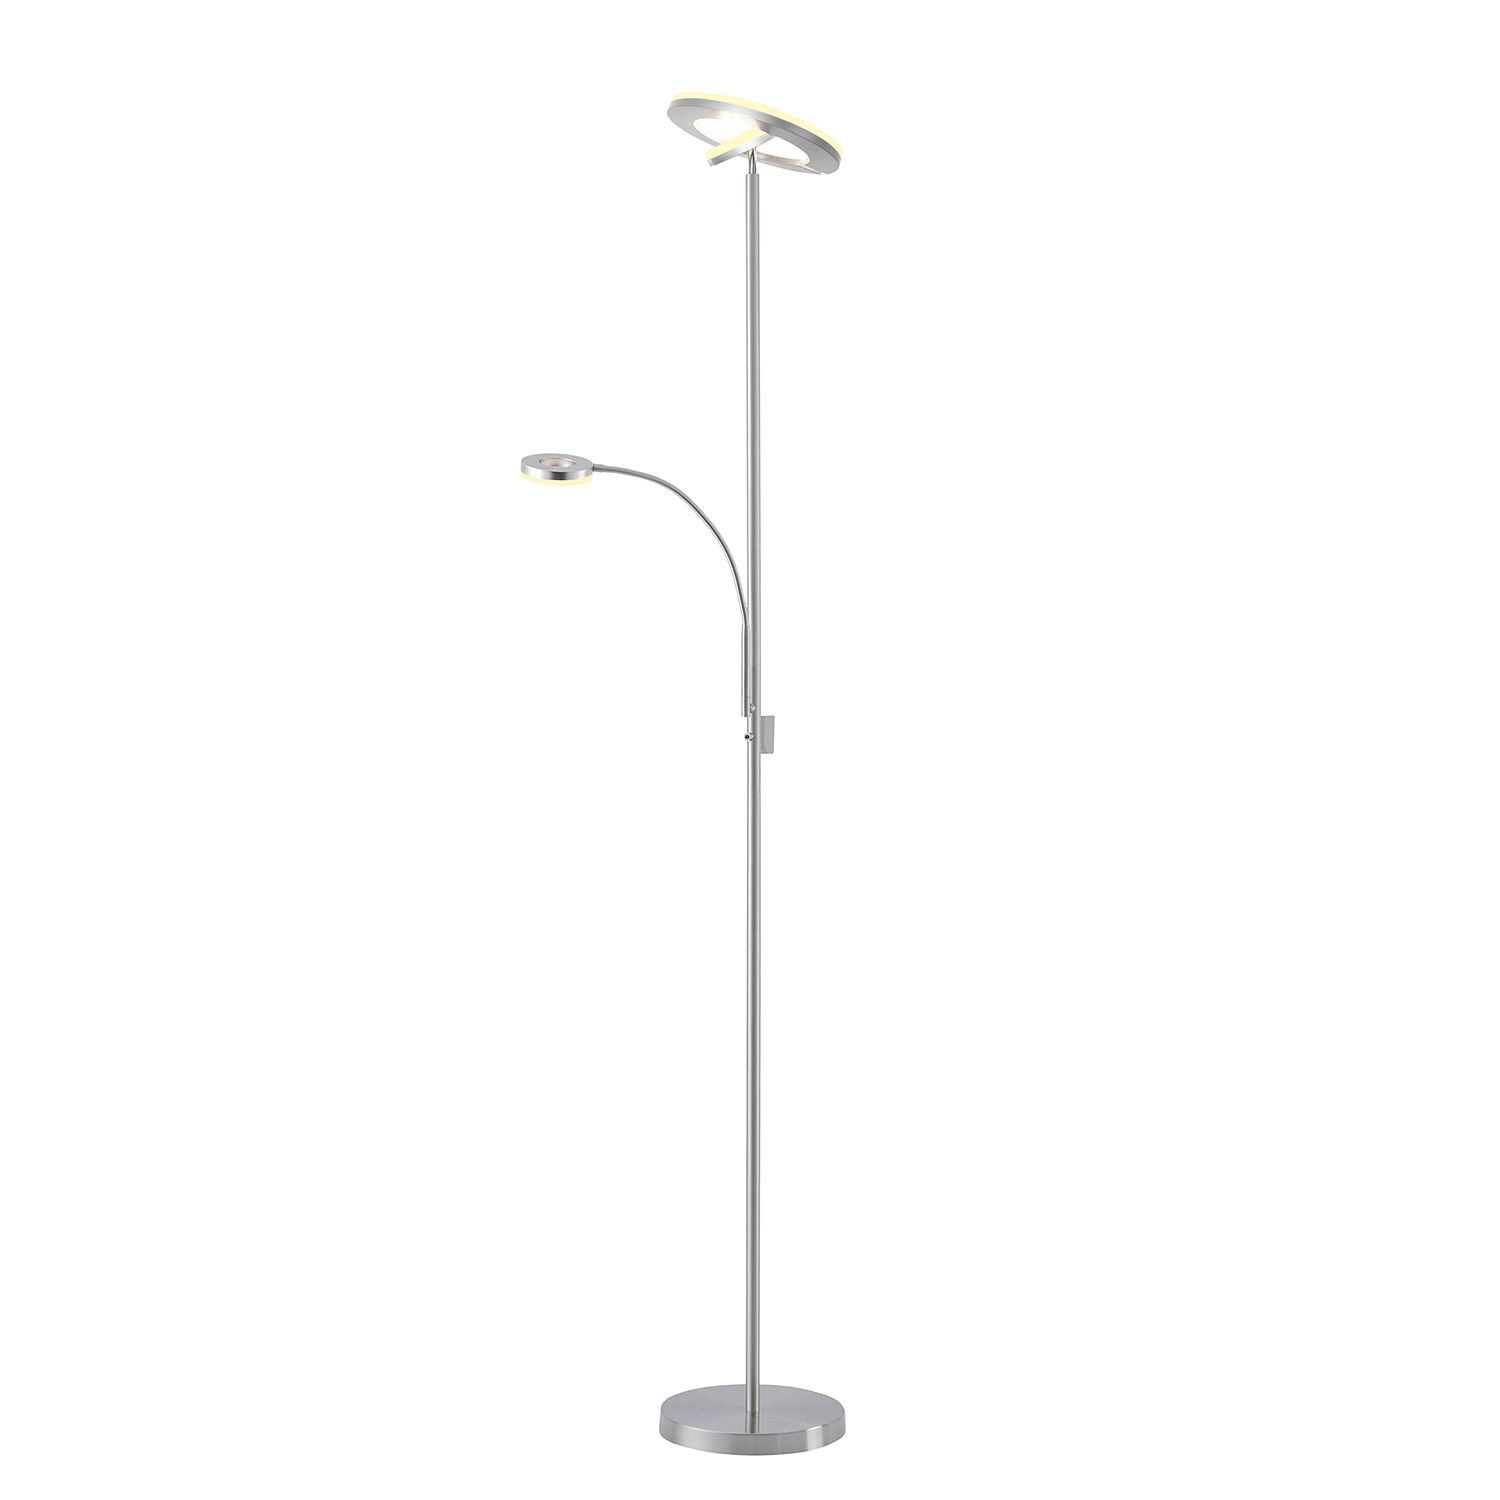 home24 LED-Stehleuchte Rocco I